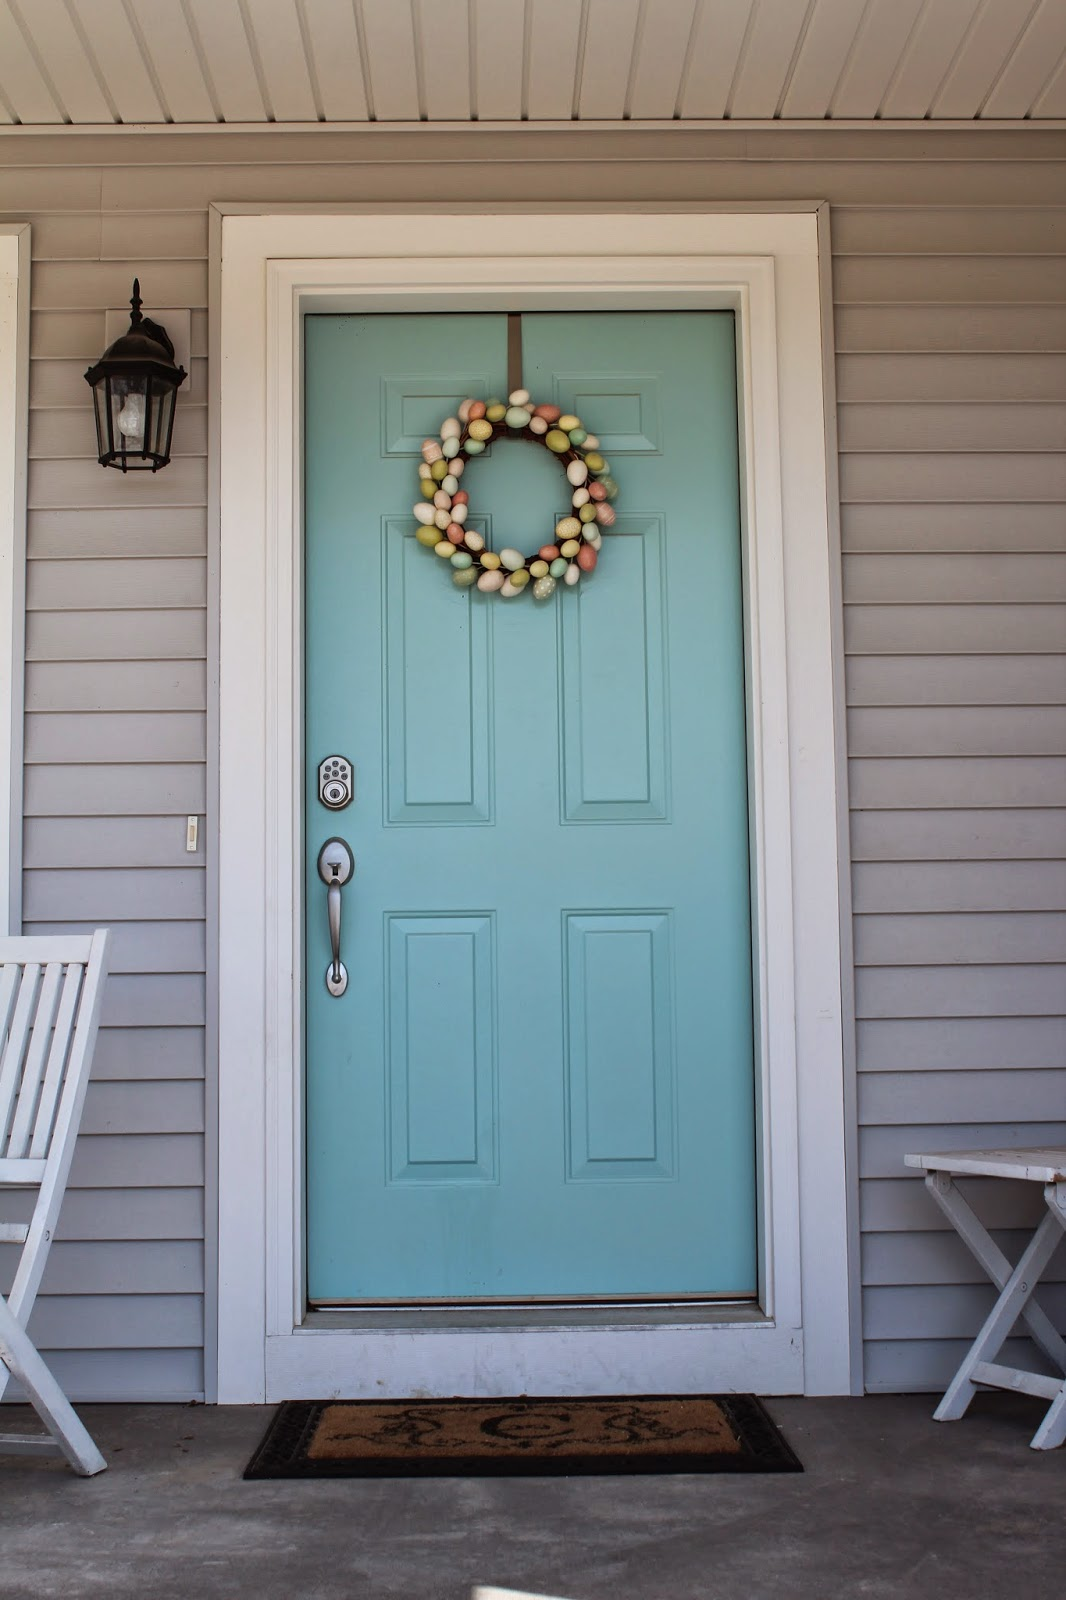 She Builds Her Home: How to Choose a Front Door Color